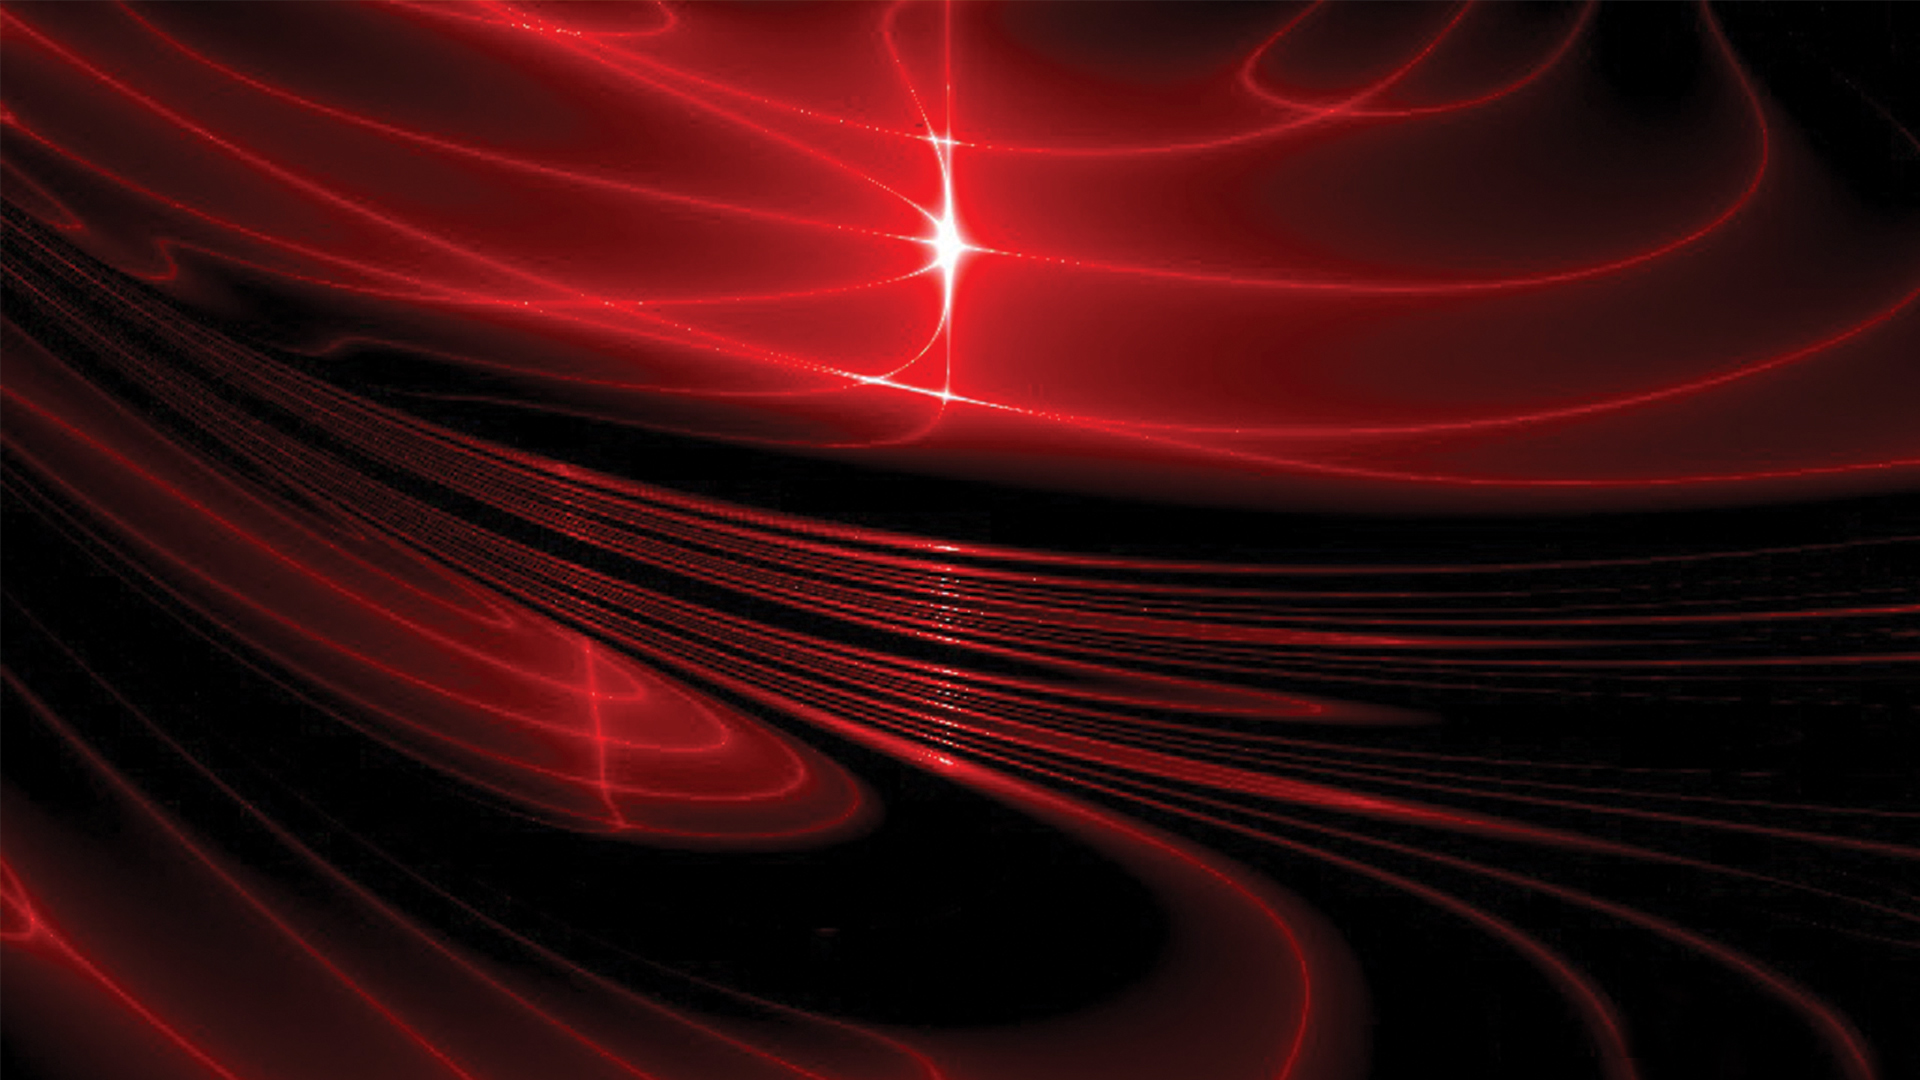 Abstract Red - 1920x1080 Wallpaper ...